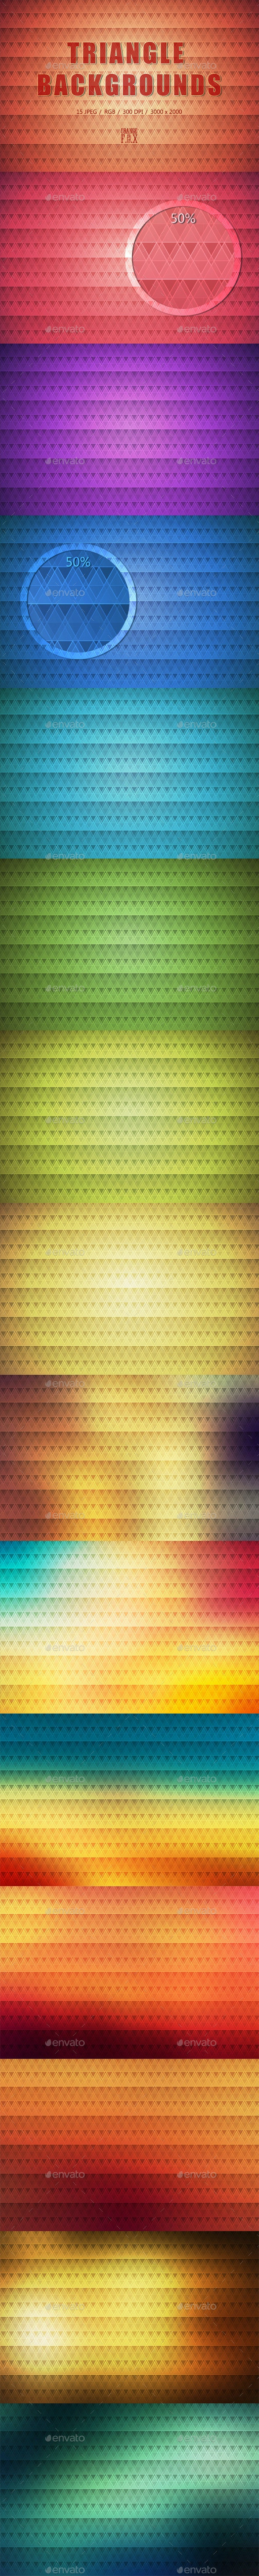 15 Triangle Backgrounds - Abstract Backgrounds